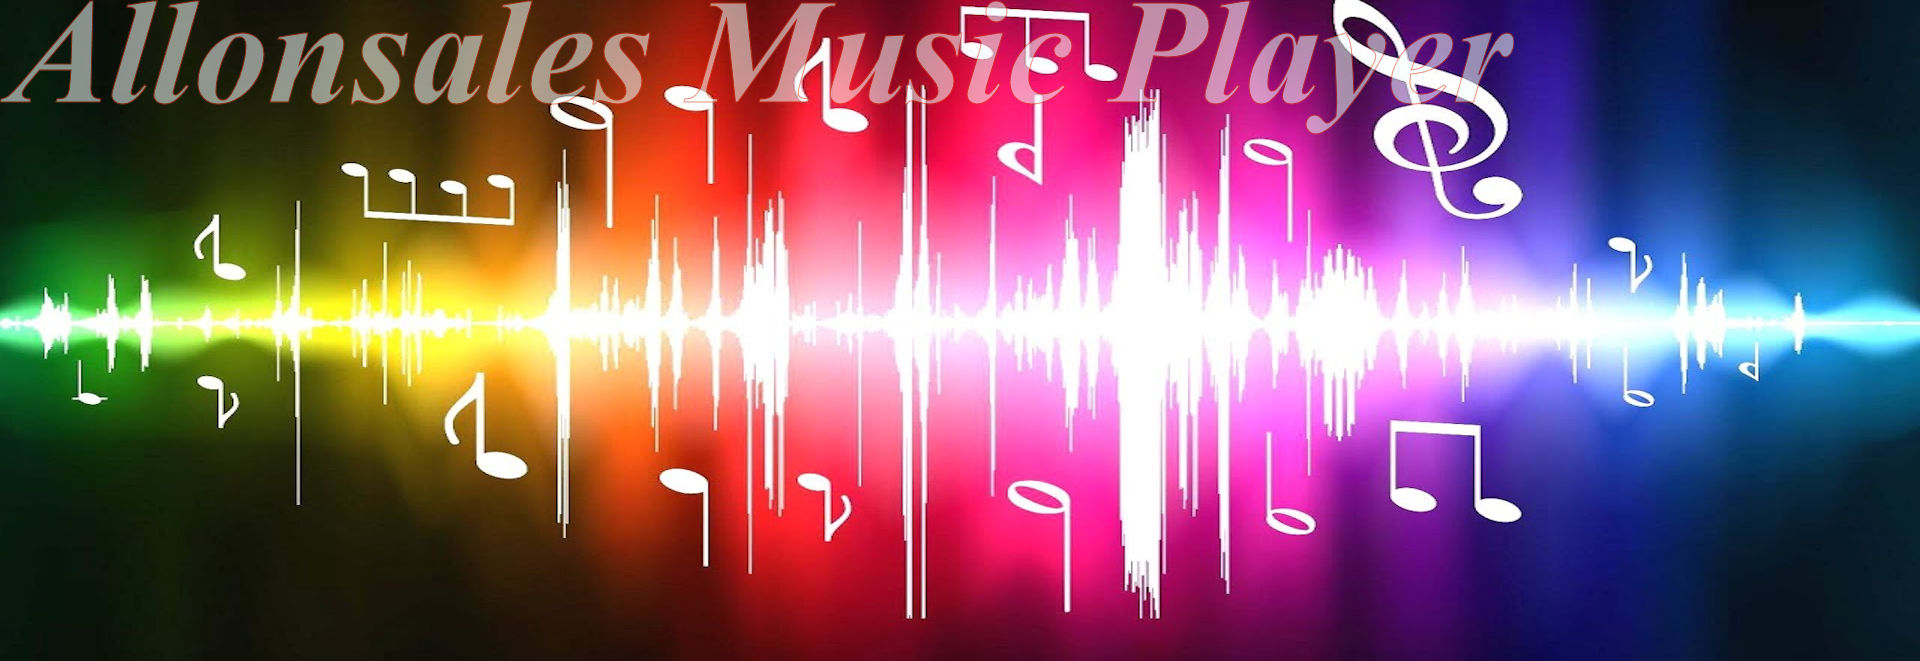 audio music playlist adv